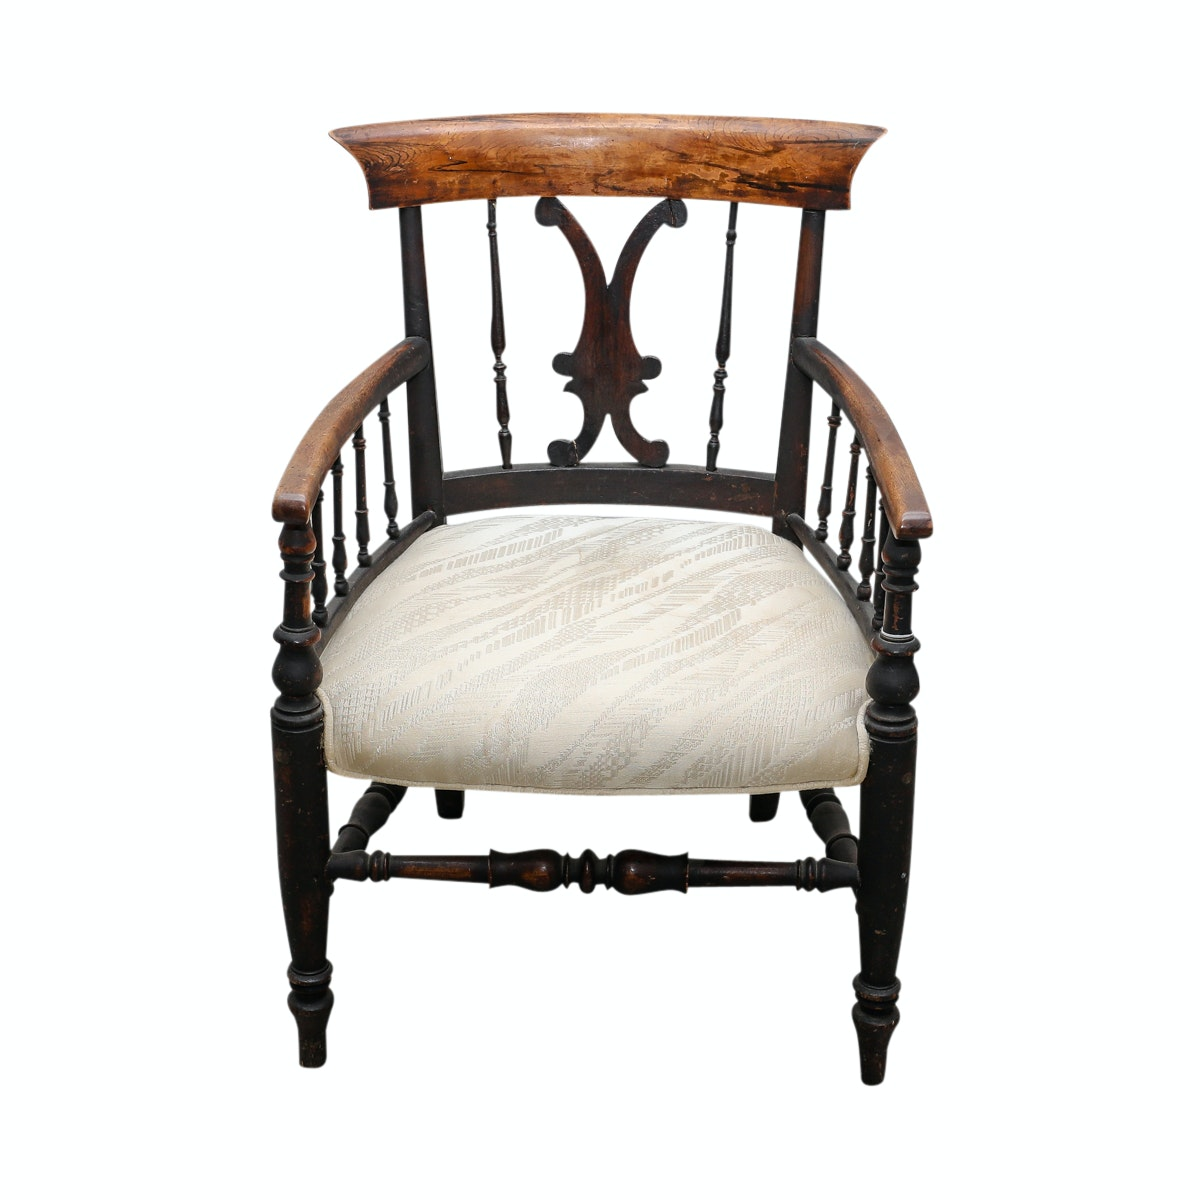 Antique Spindle and Slat-Back Armchair